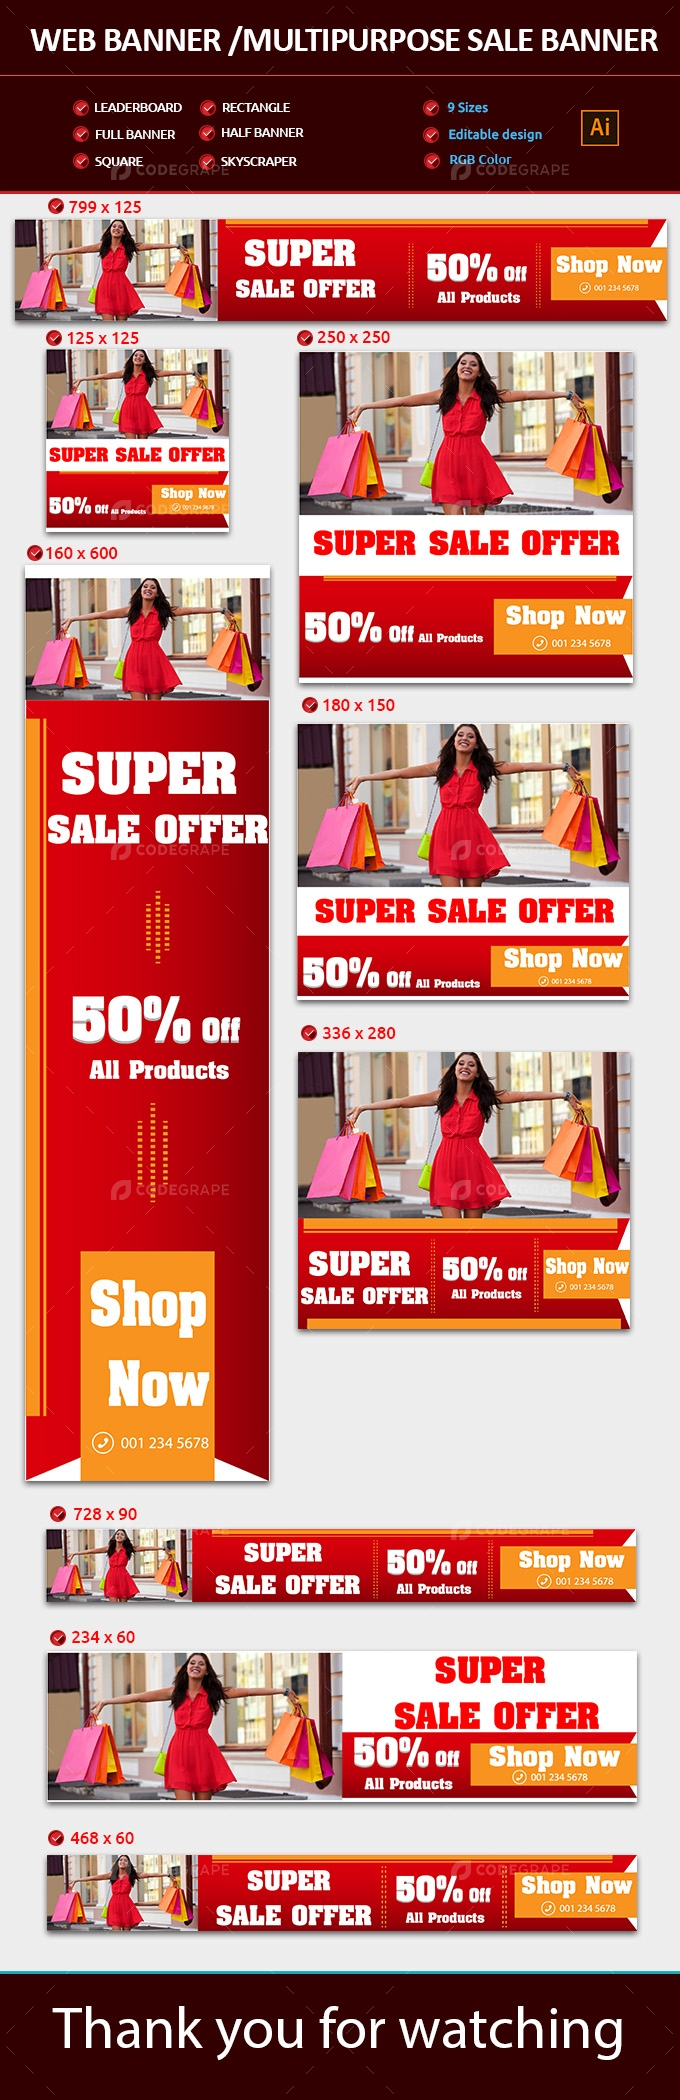 Web Banner-Multipurpose Sale Banners set